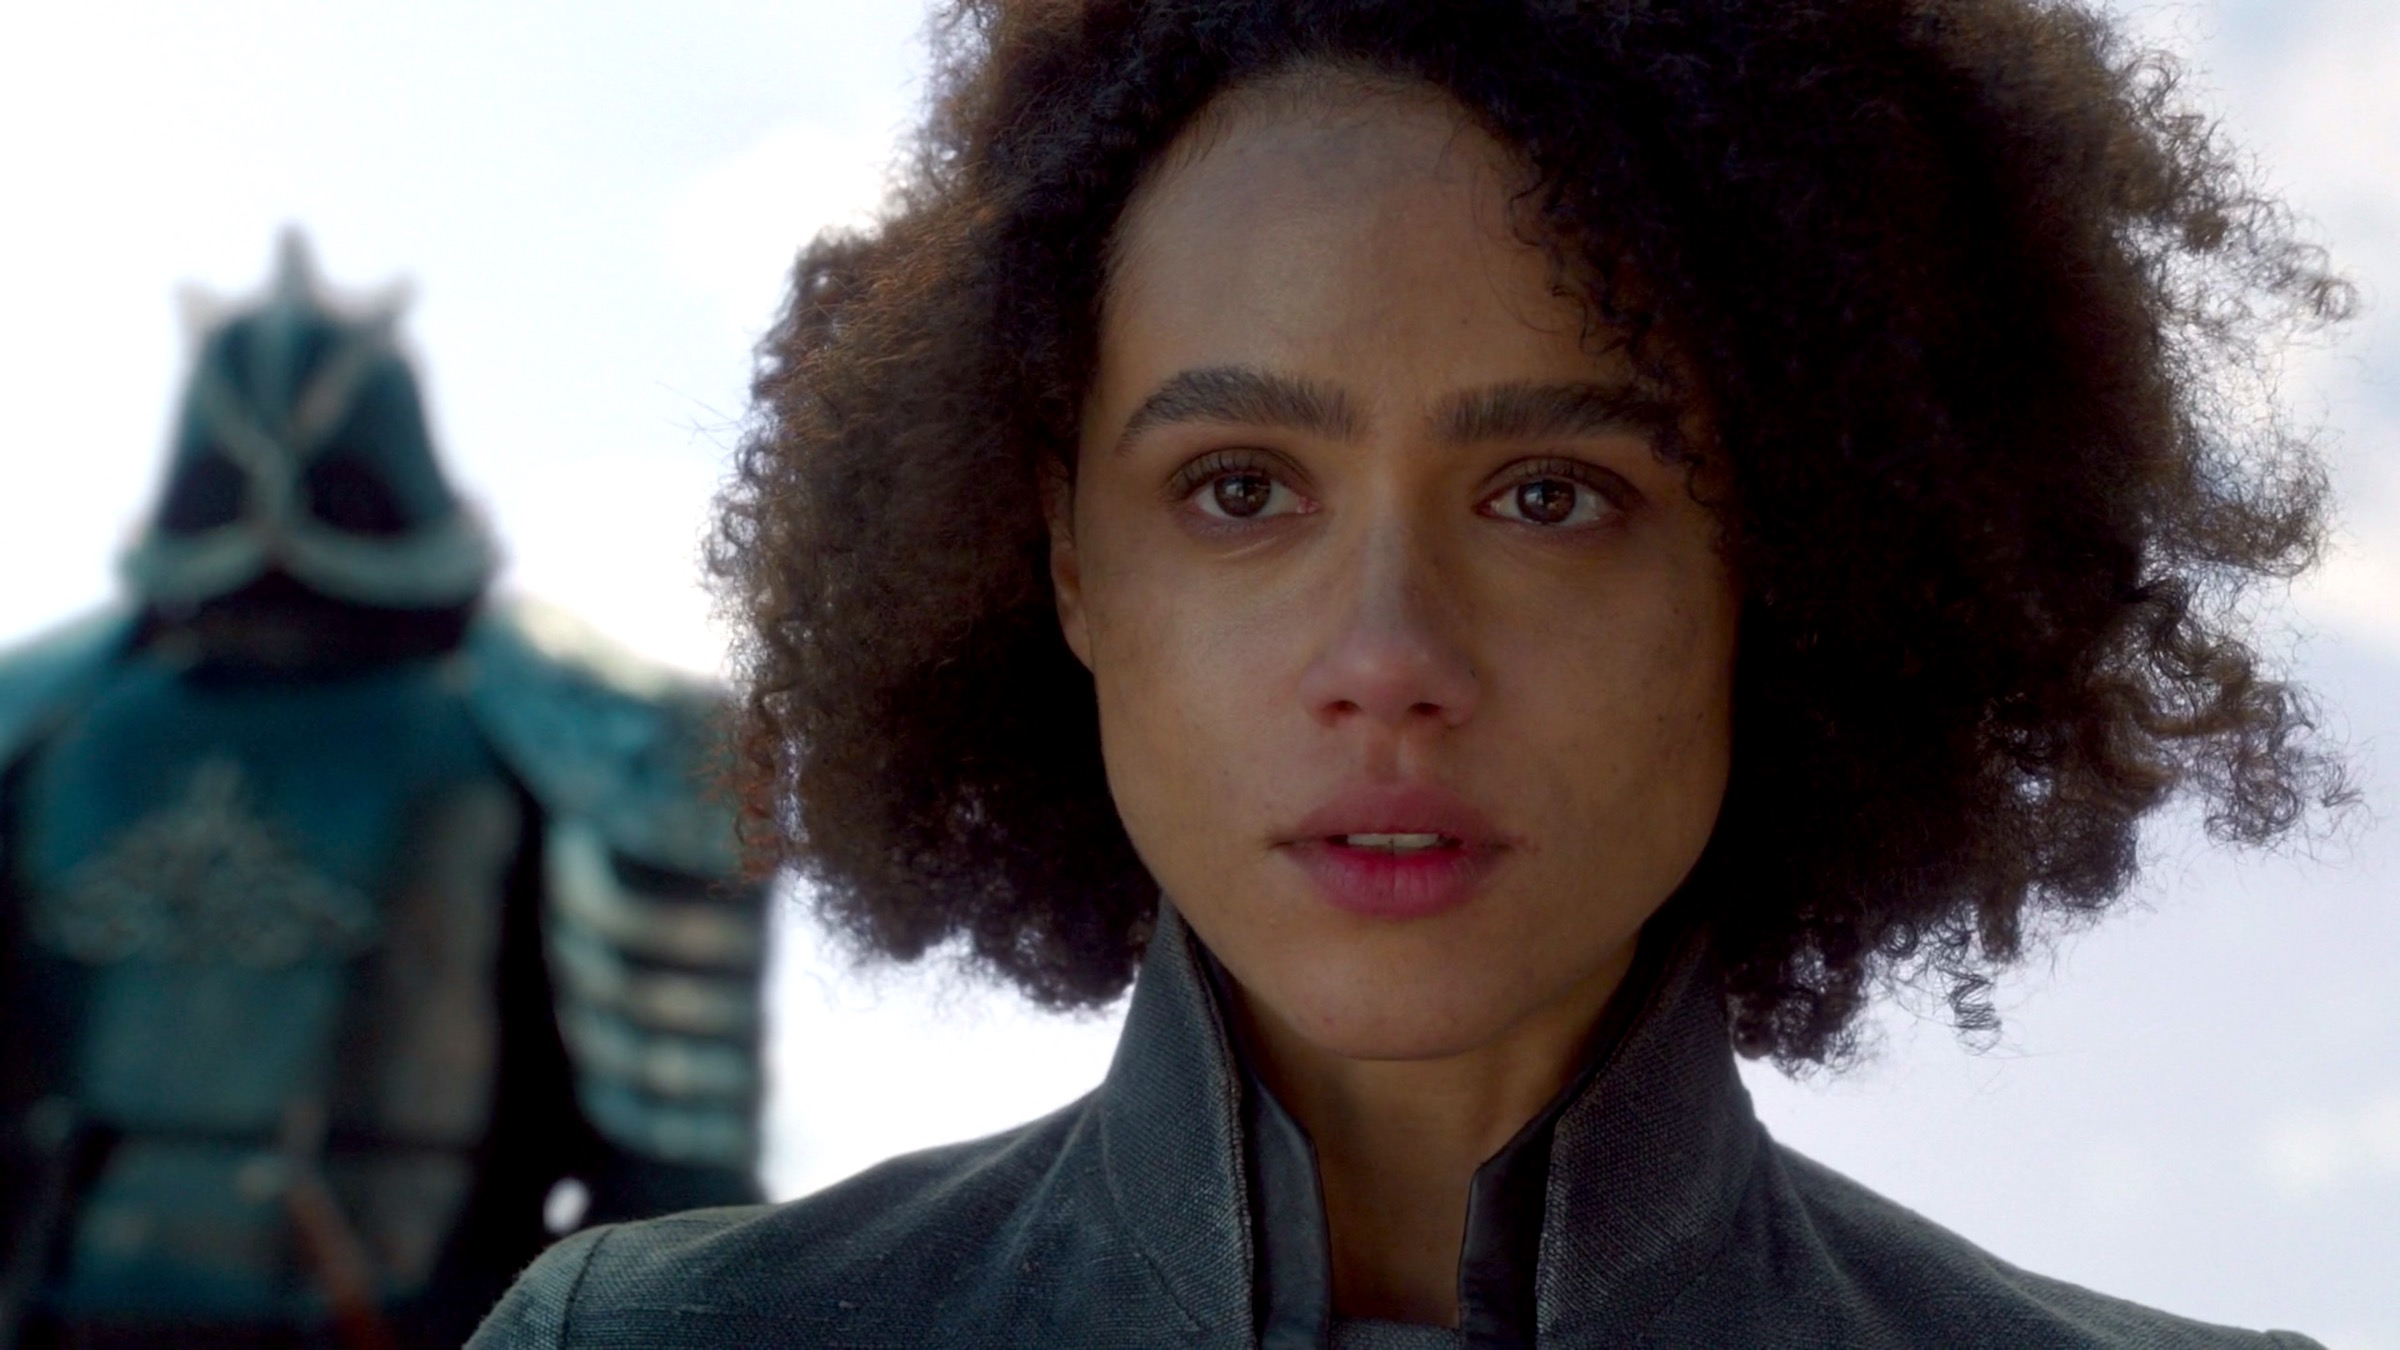 Missandei in GAME OF THRONES 8x04 - The Last of the Starks